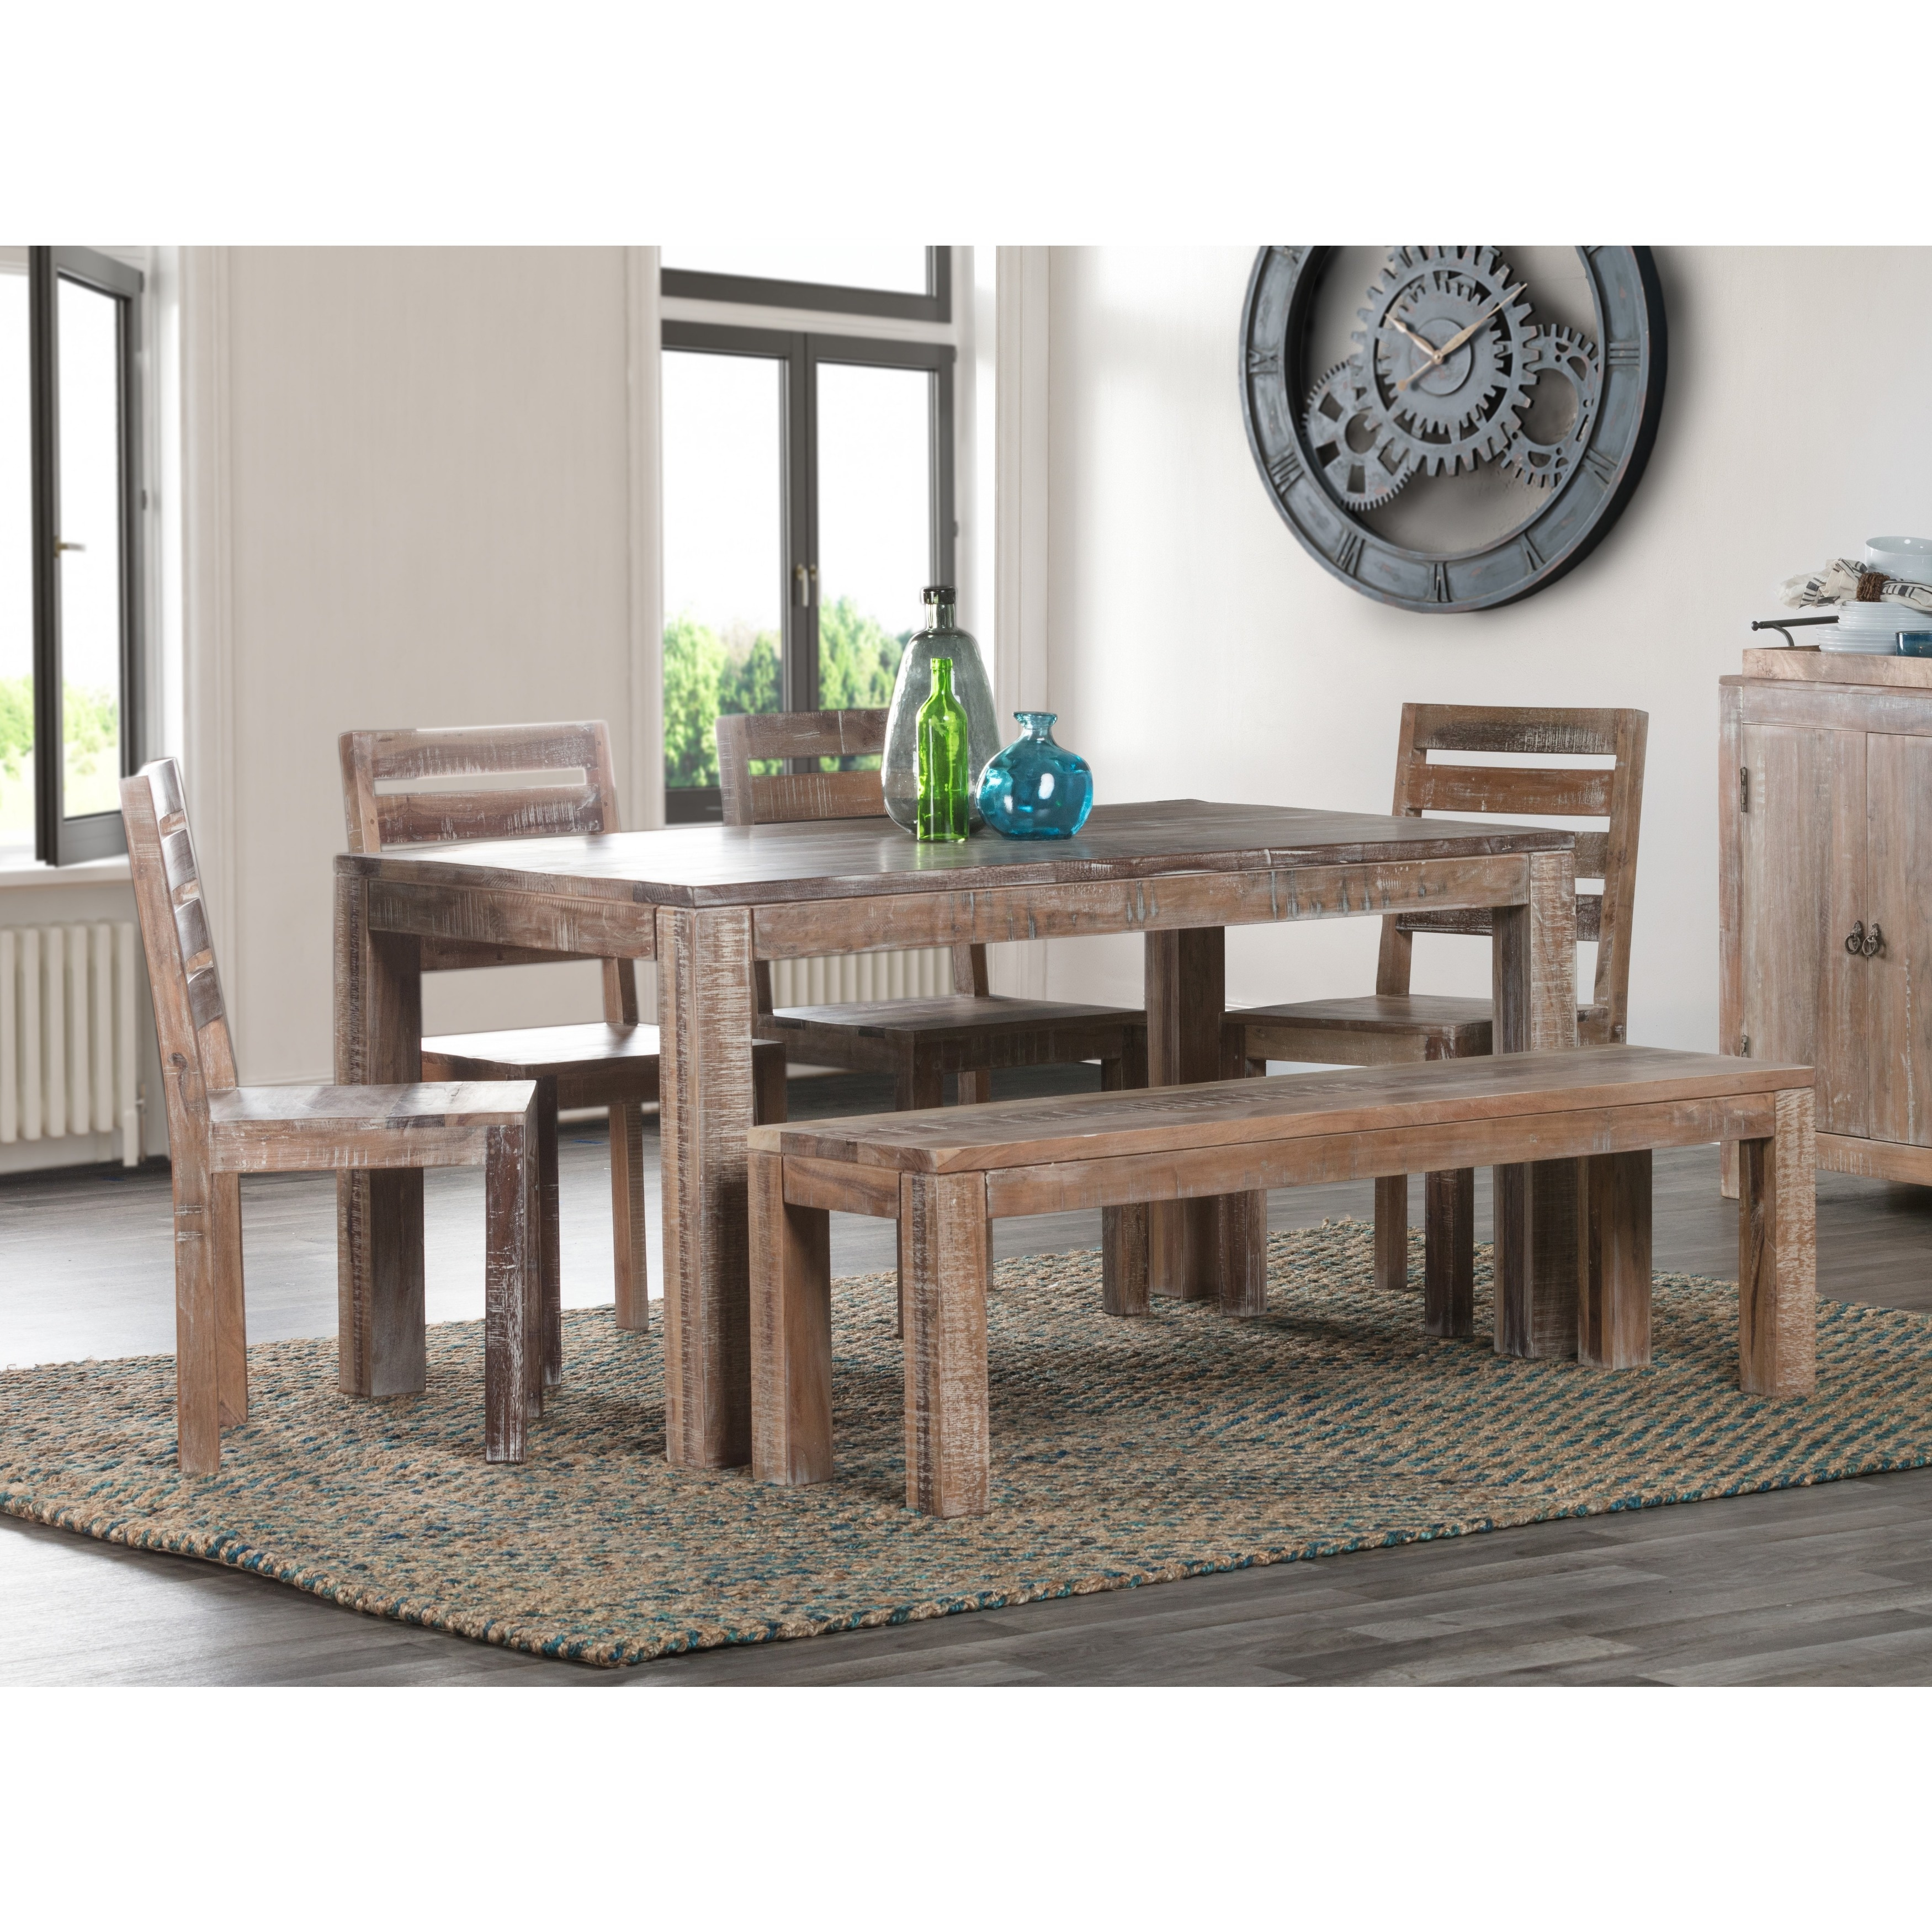 Reclaimed Wood 60 Inch Dining Table